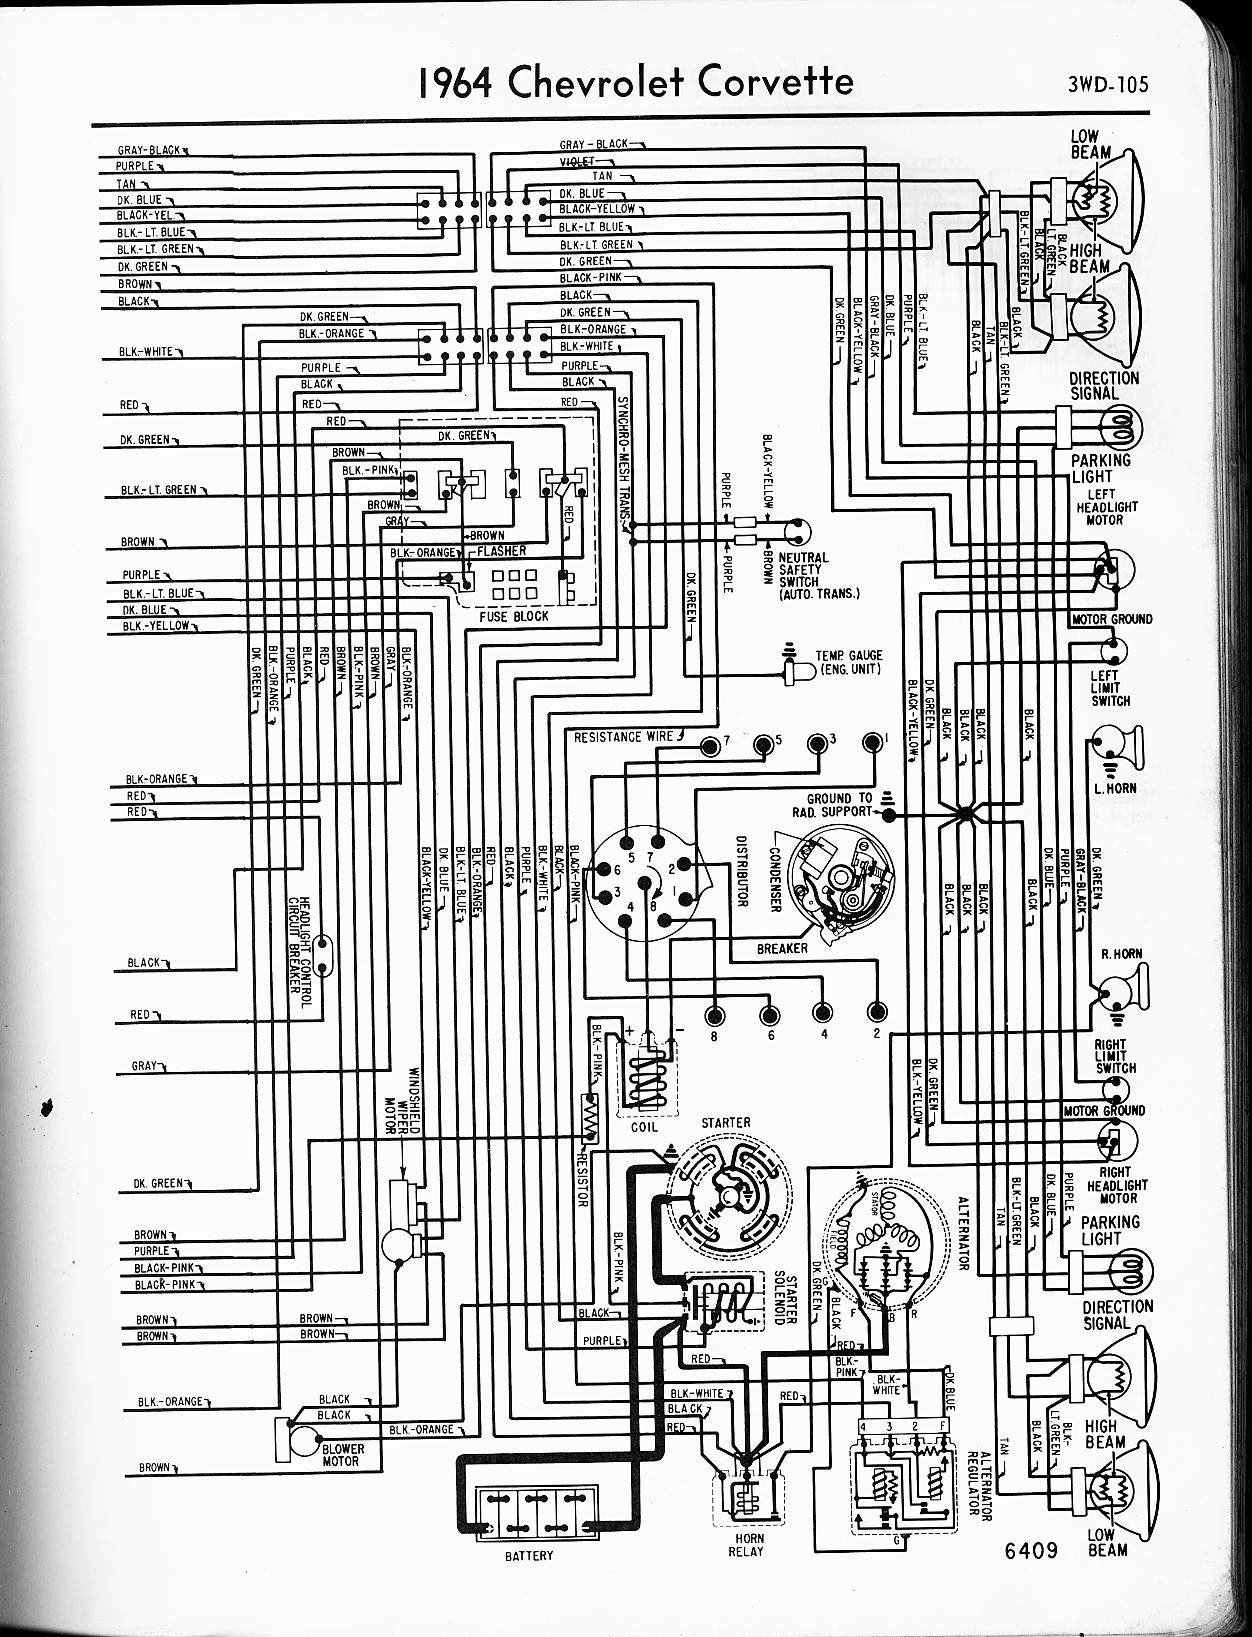 1972 chevy truck ignition wiring diagram vz sv6 stereo 81 corvette schematics best site harness